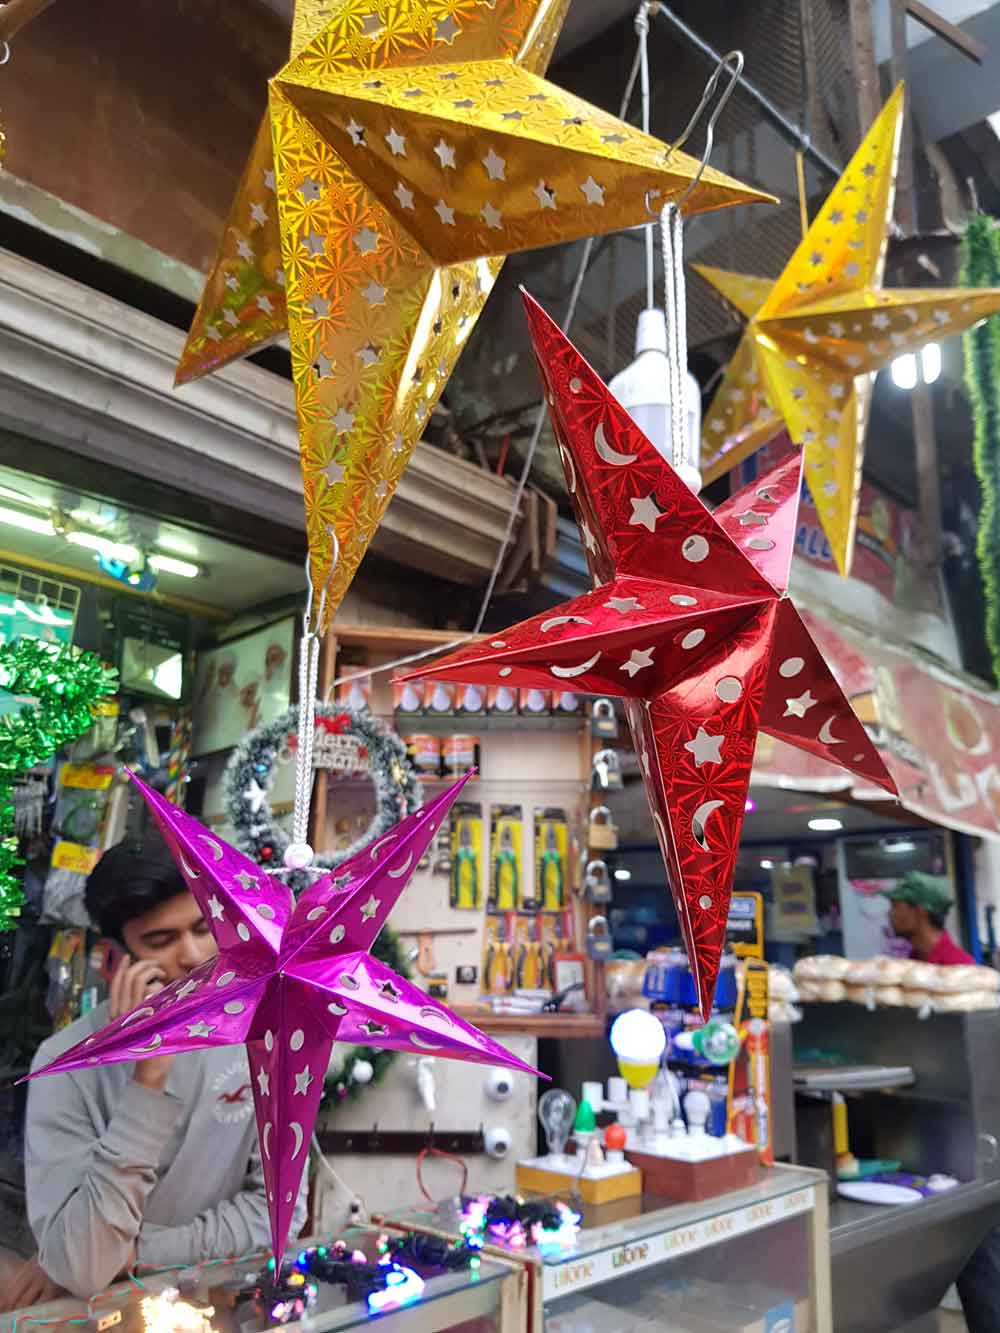 In Saddar, a hardware store that sells Christmas trinkets